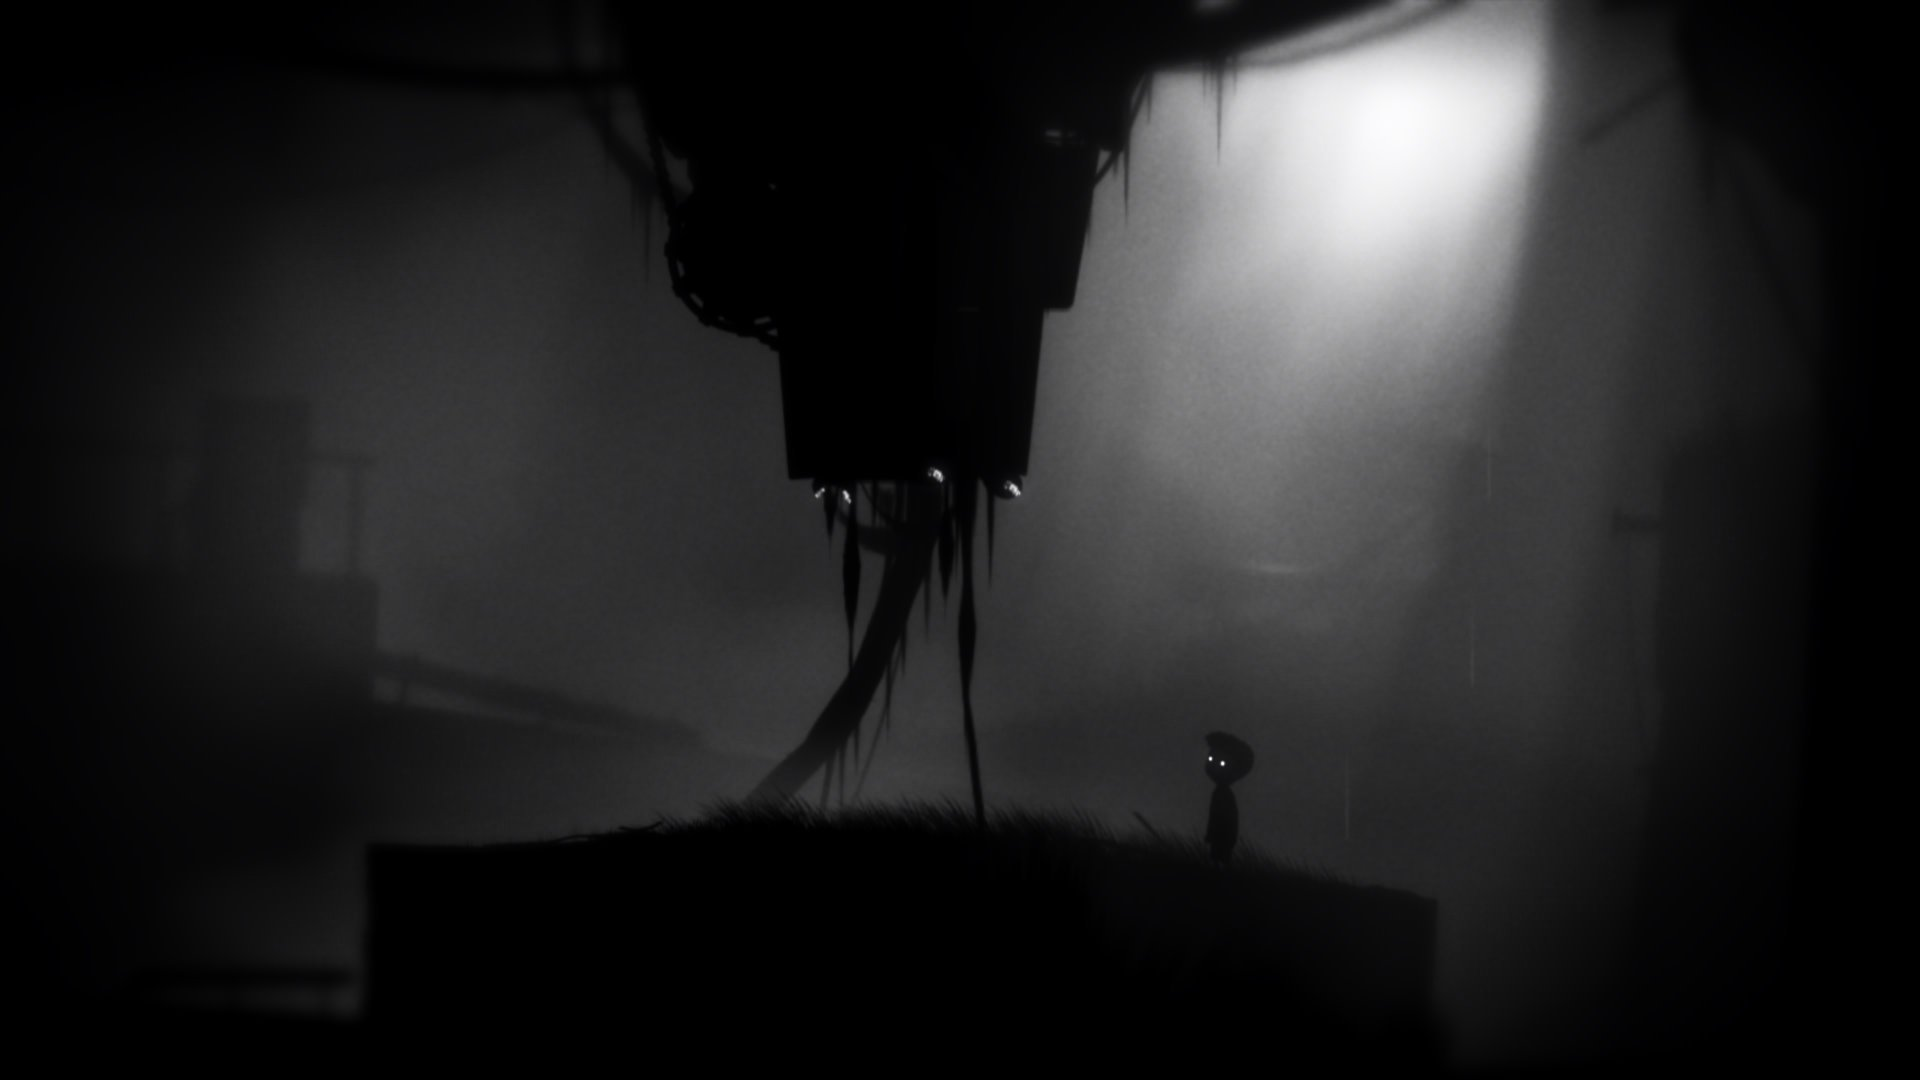 Free download limbo ps3 wallpapers 1920 1080 [1920x1080] for